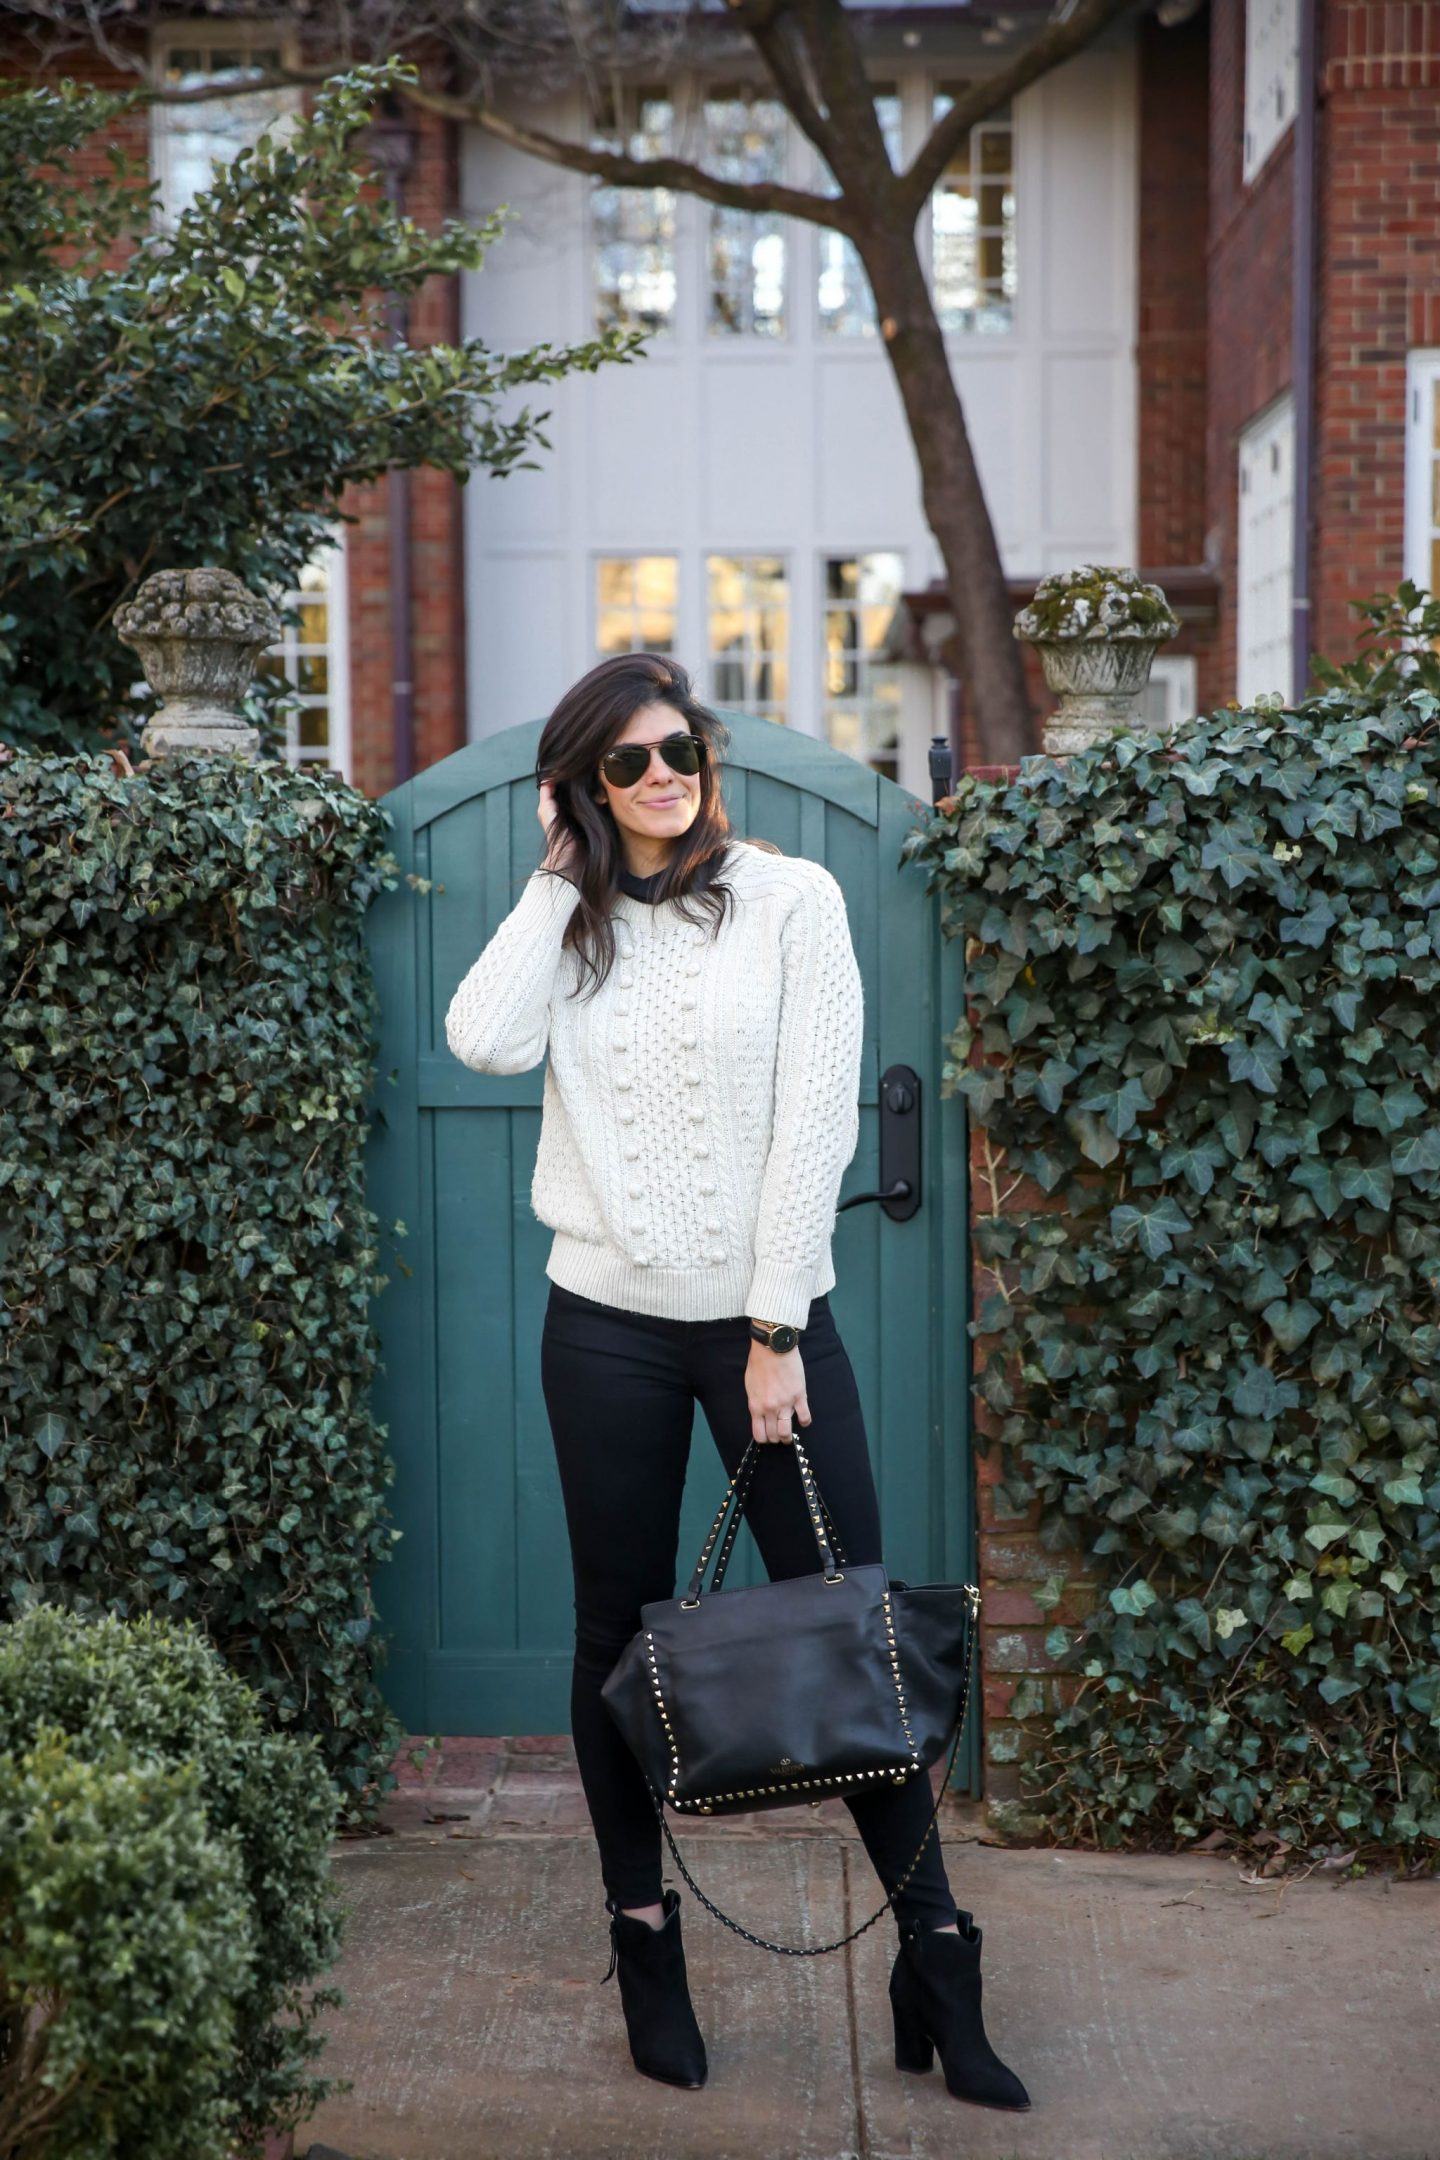 black turtleneck - cream Cable knit sweater - black skinny jeans - Lauren Schwaiger